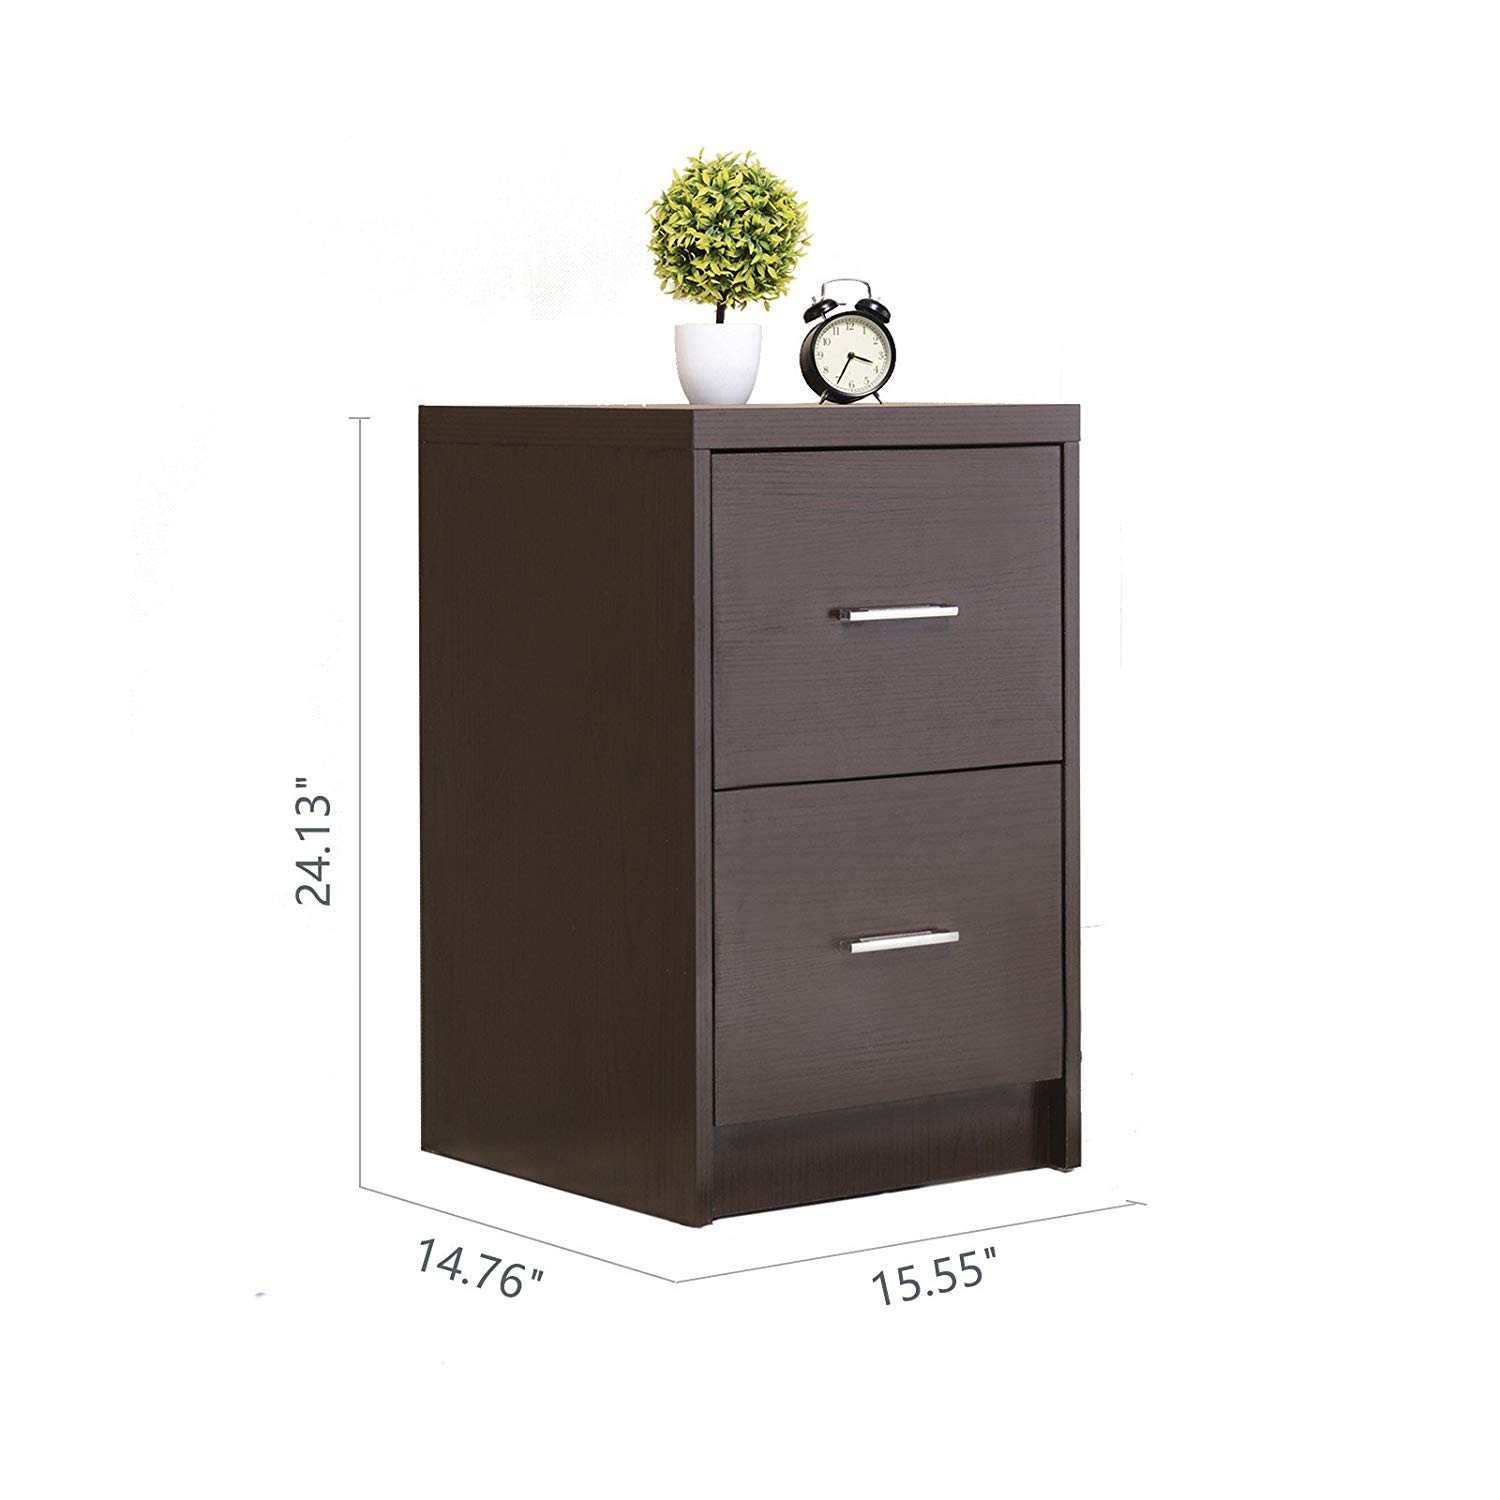 mecor nightstands end table with drawers mdf square winsome accent instructions bedroom furniture espresso finish set kitchen dining outdoor coffee tall crystal lamps wicker mid